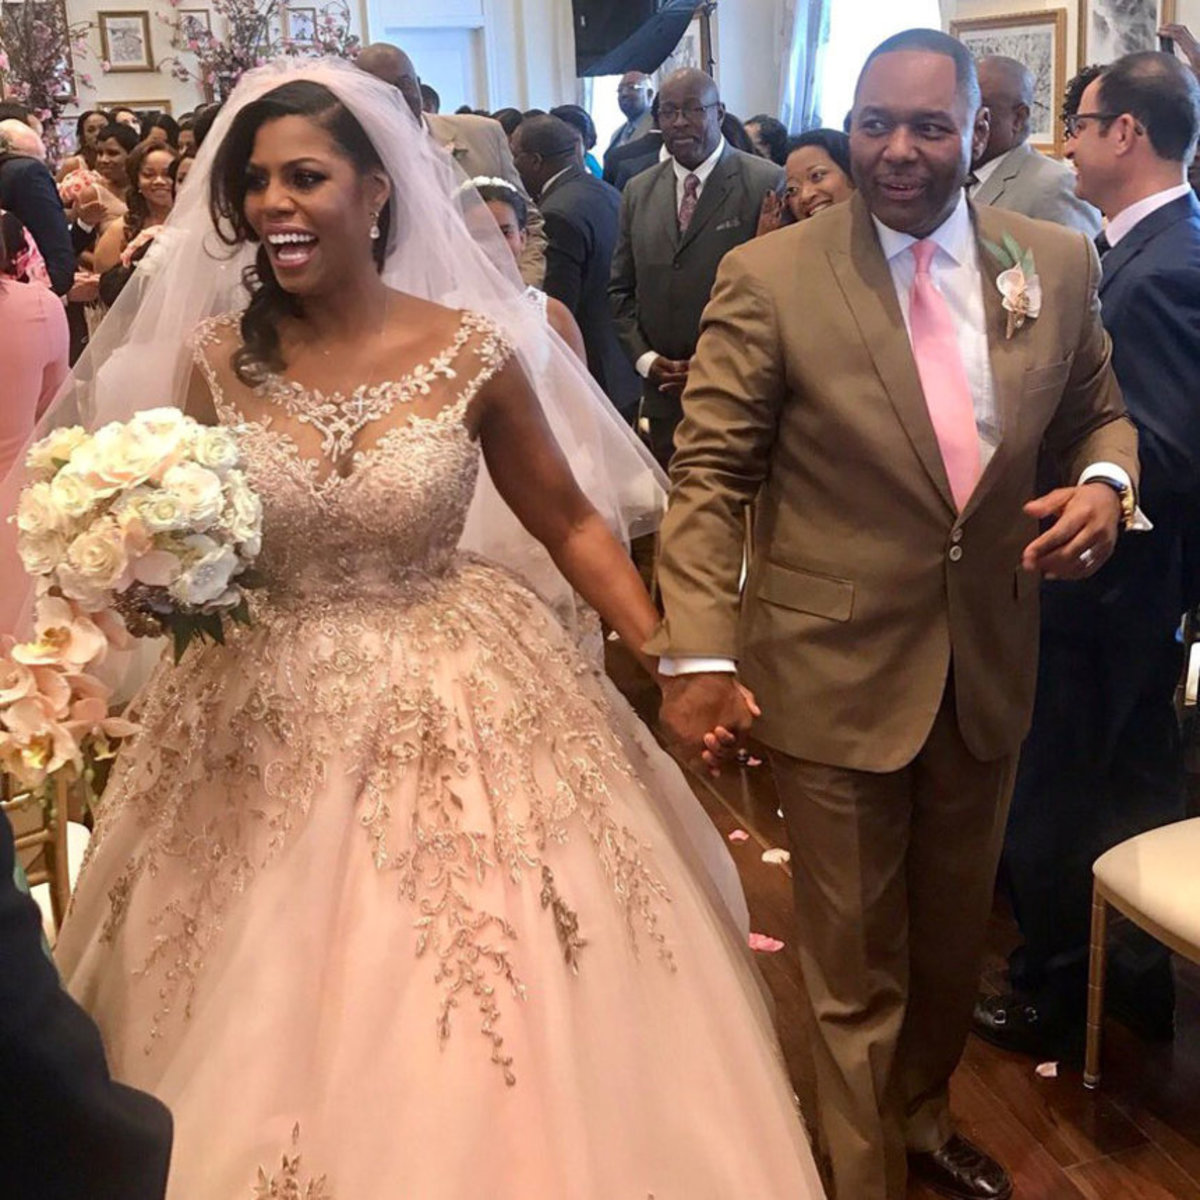 Omarosa married Pastor John Allen Newman on April 8, 2017.